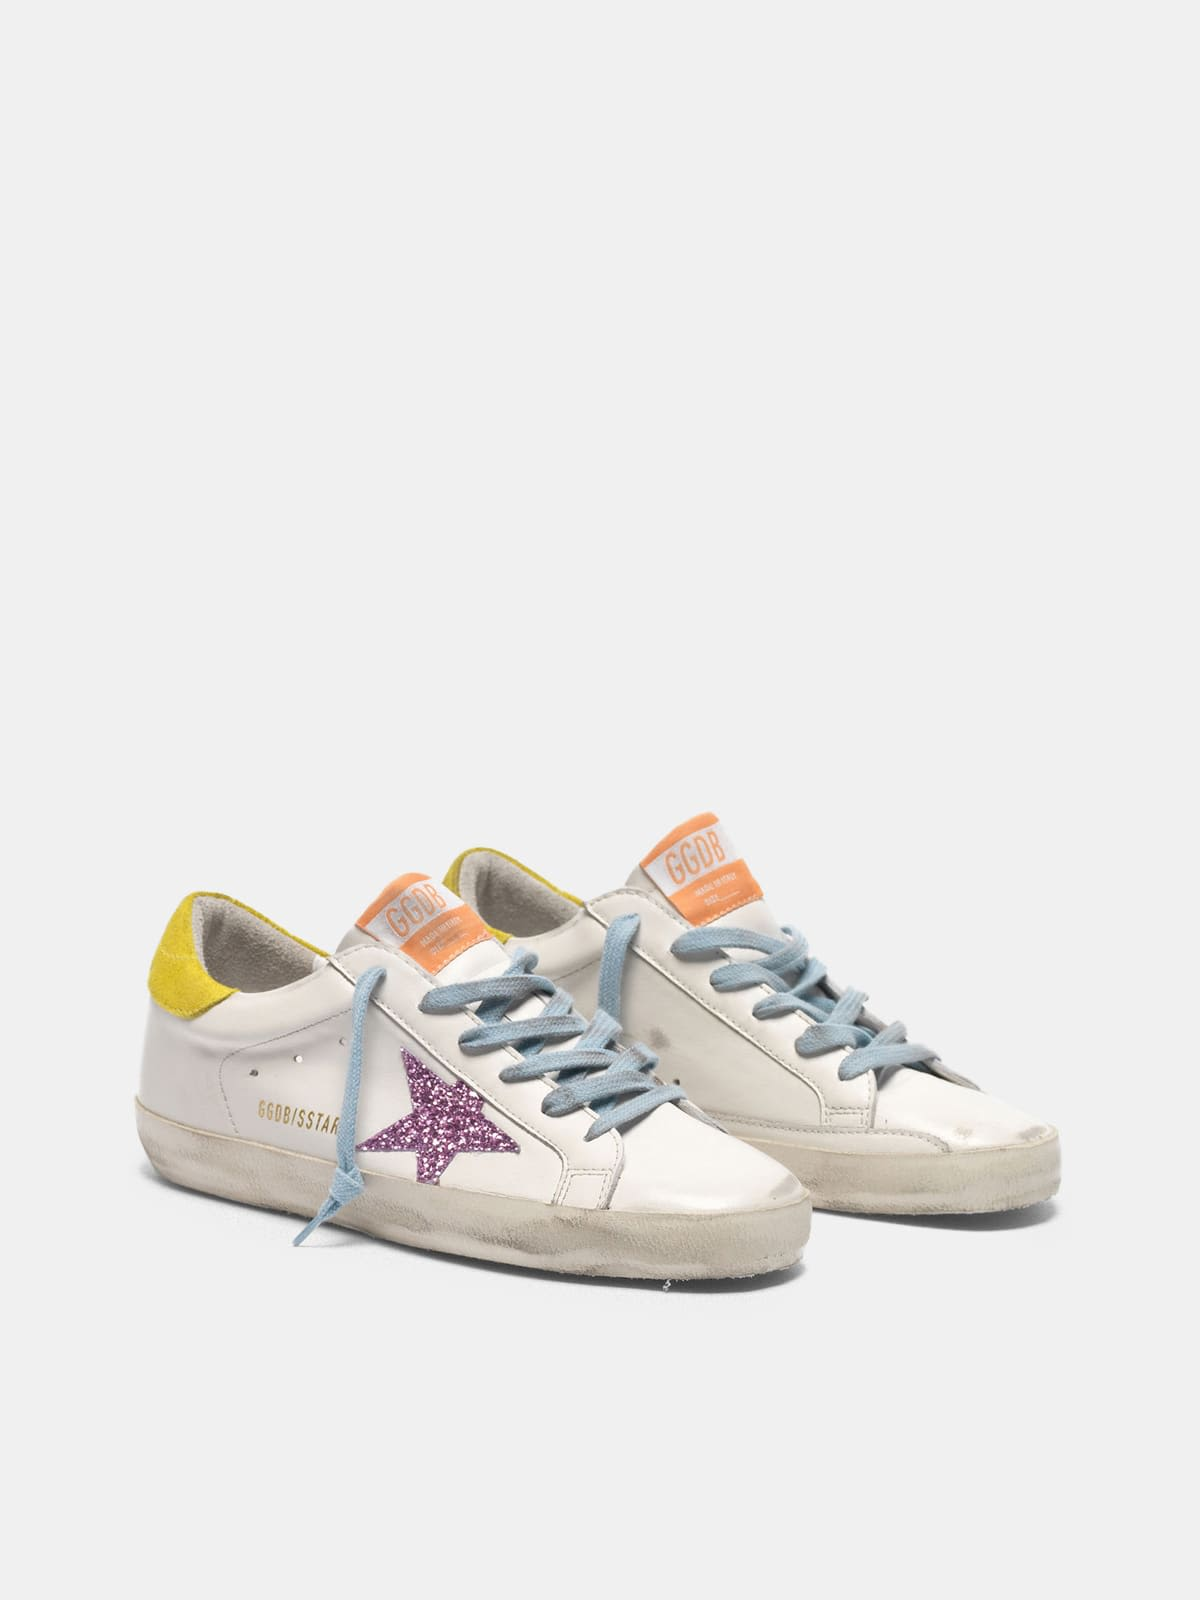 Super-Star sneakers with pink glittery star and yellow heel tab